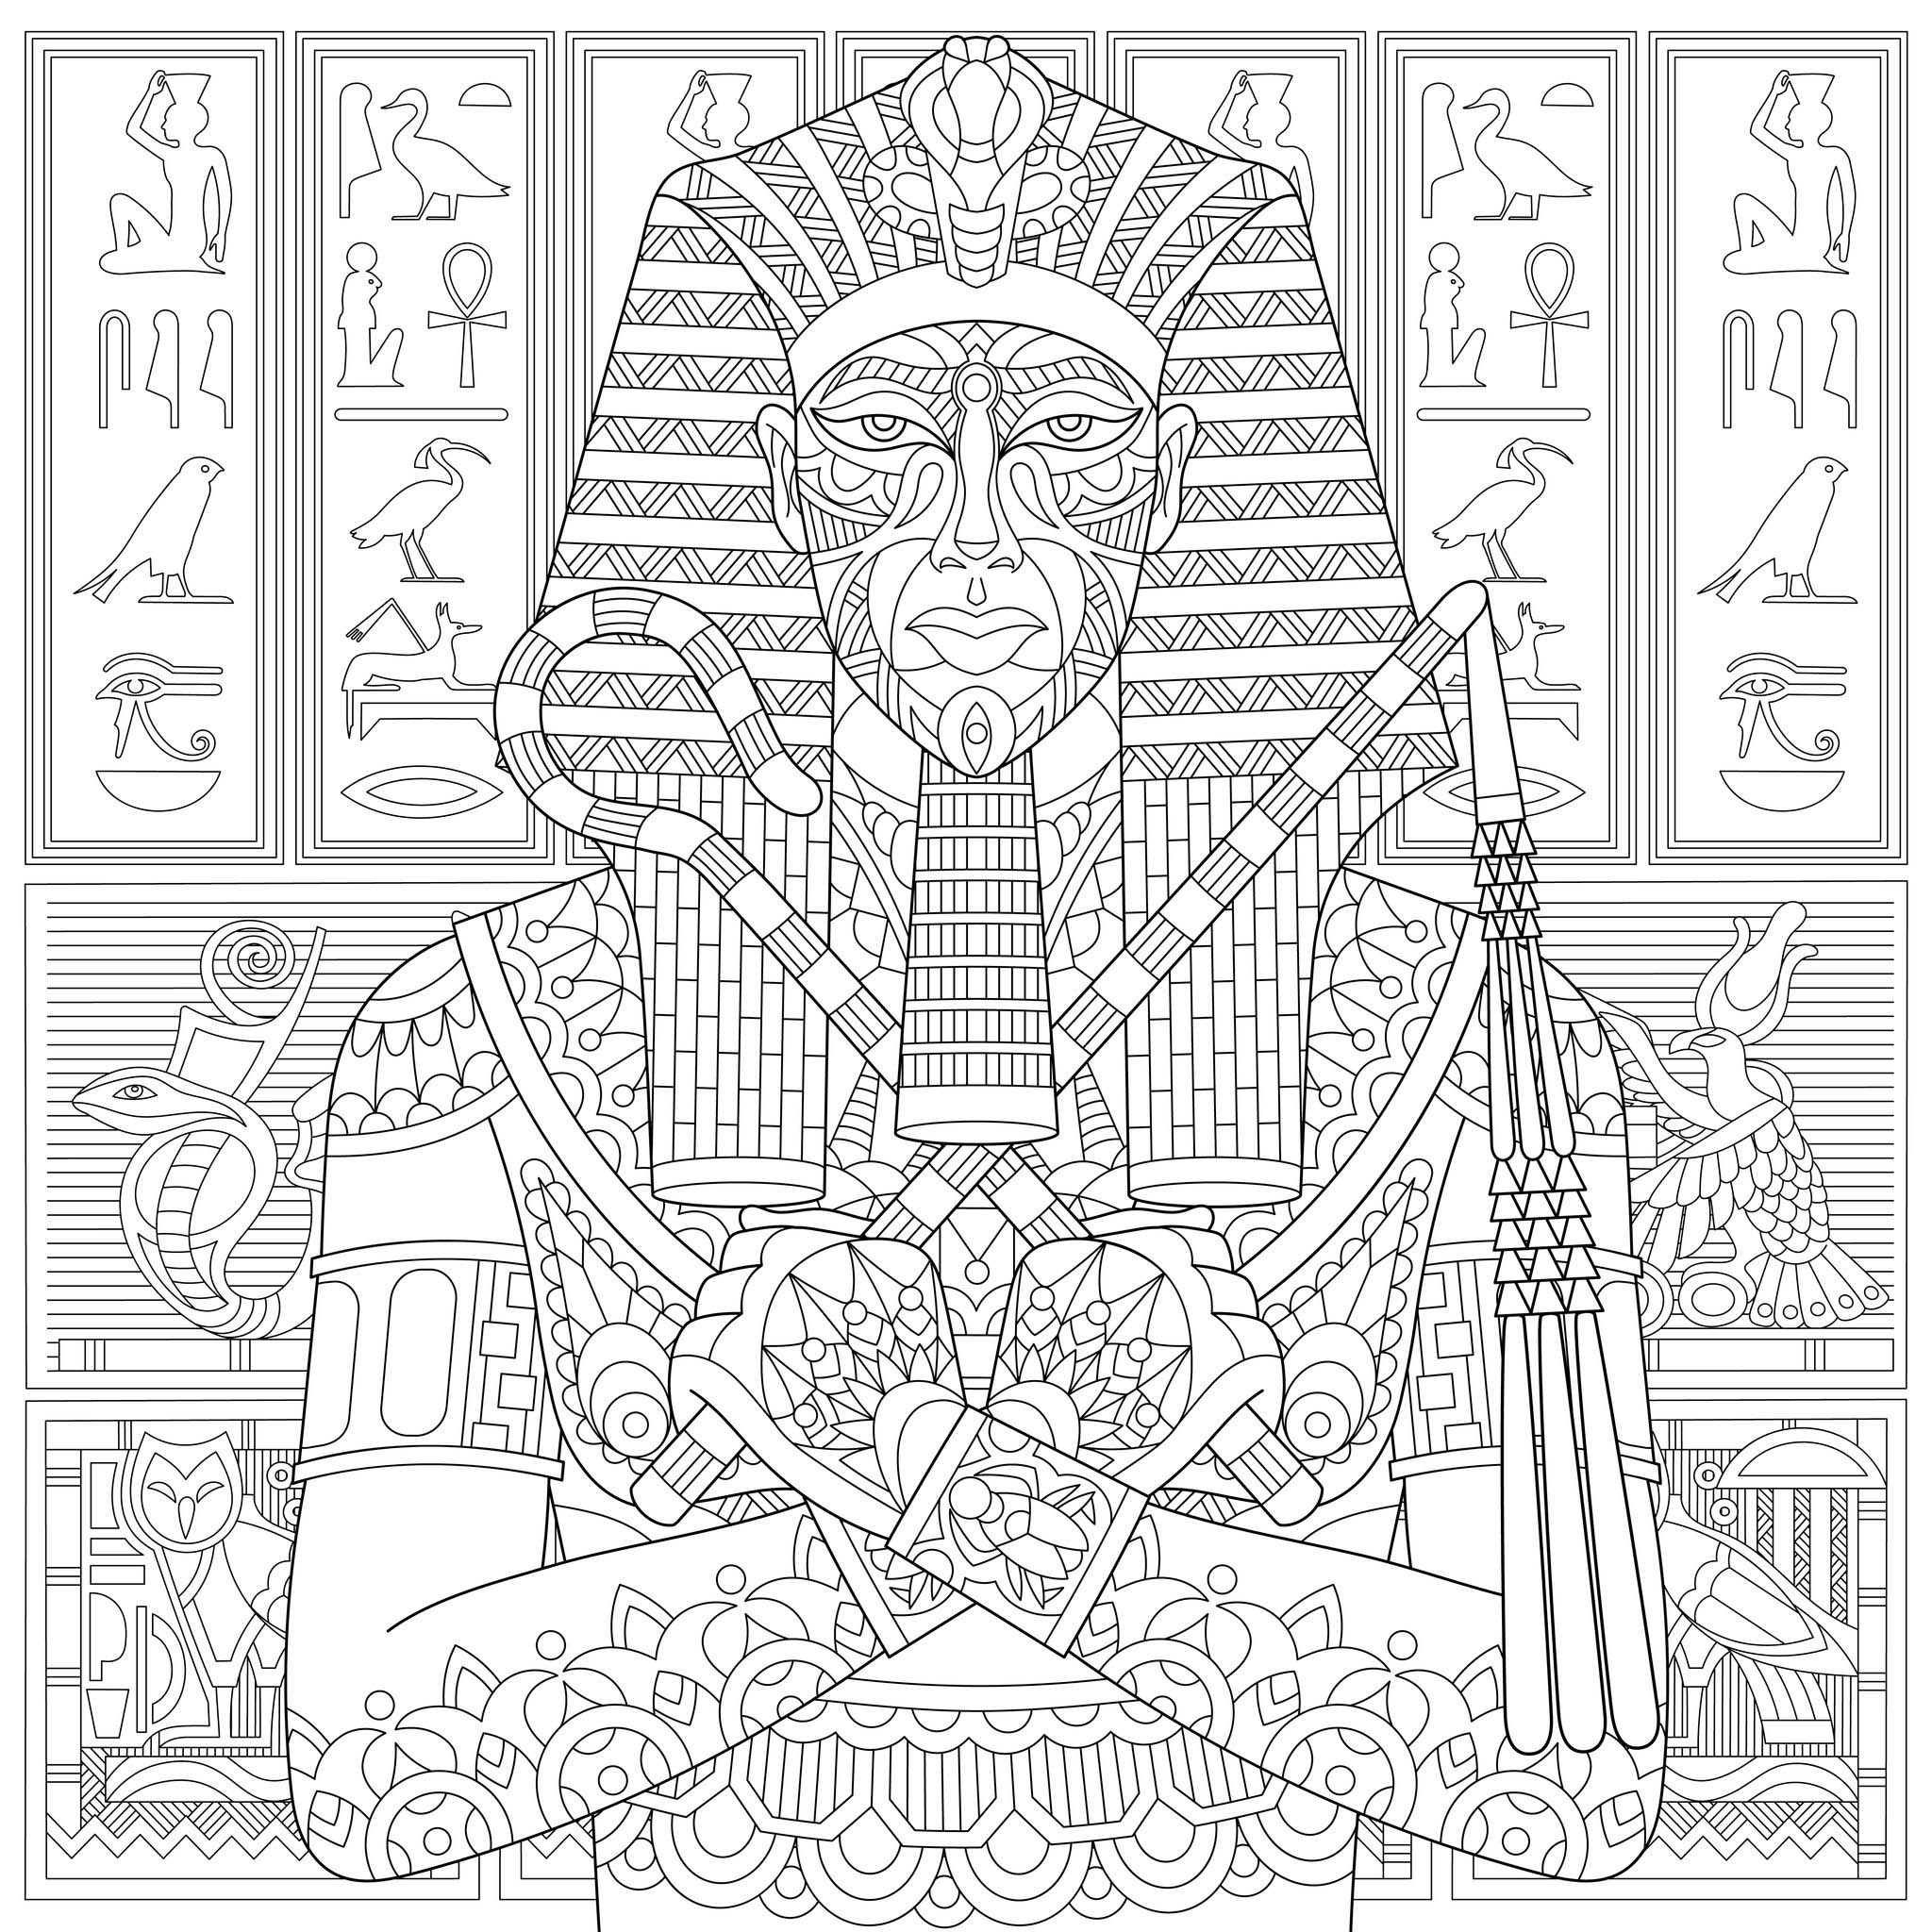 Egypt to download - Egypt Kids Coloring Pages